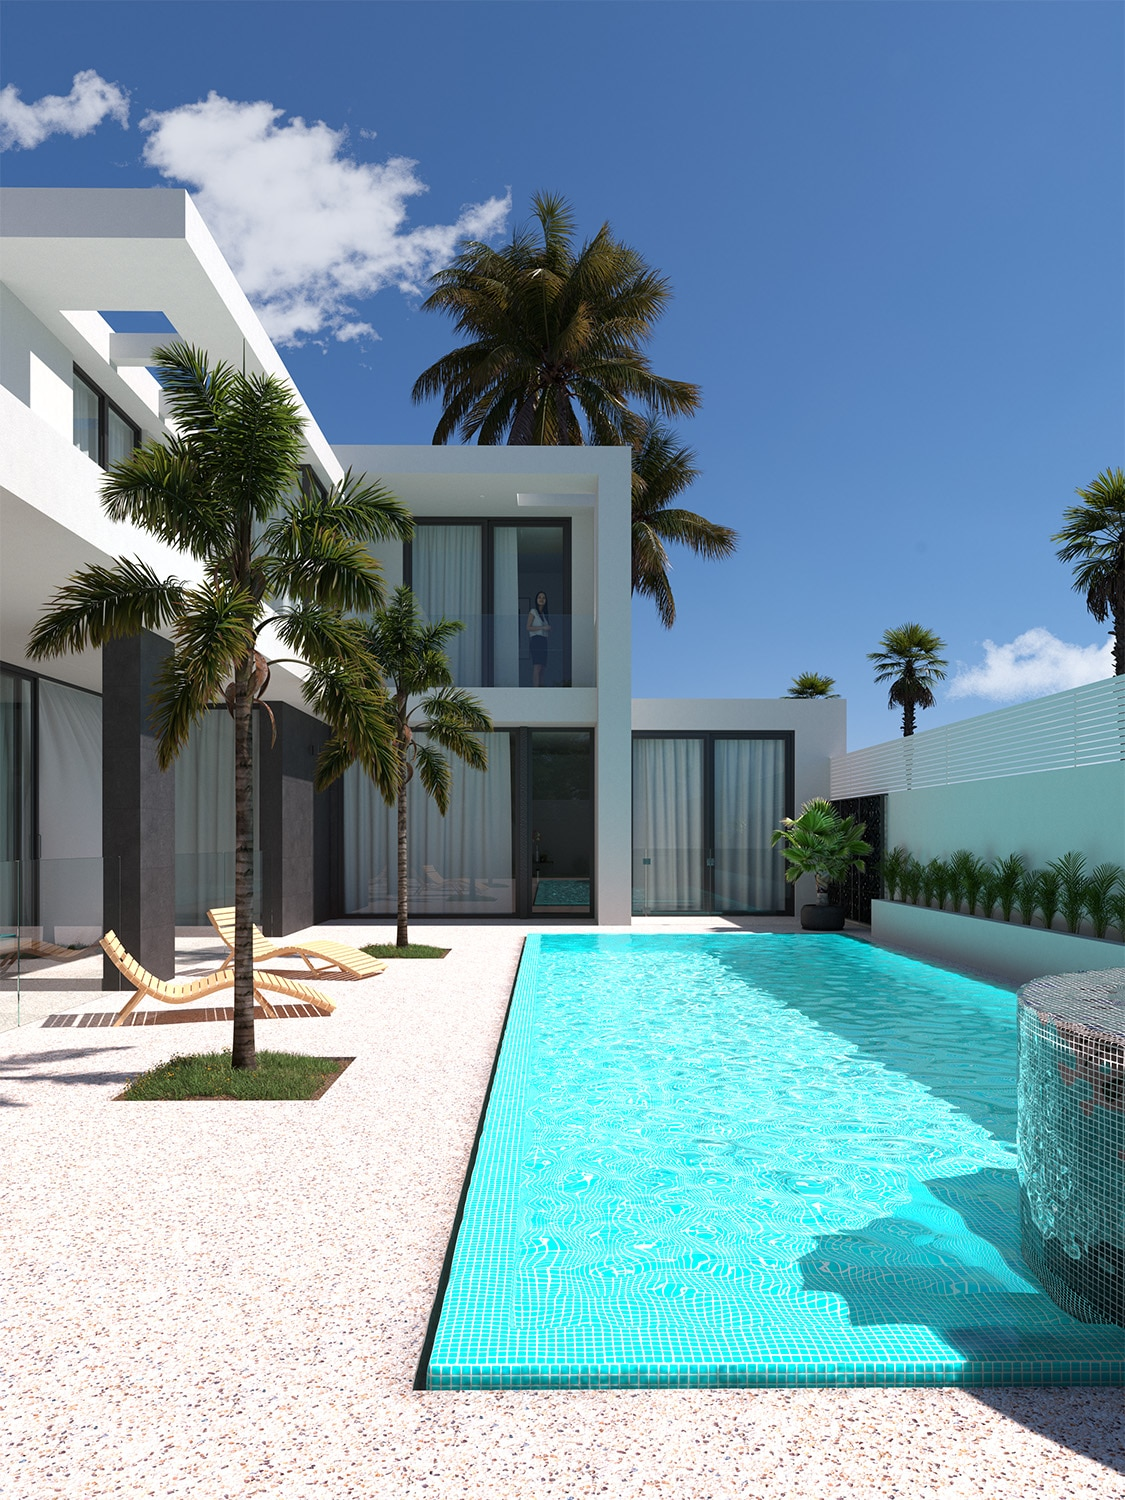 exterior-2-resort-house-cgi-interior-cgi-francos-and-costa-architectural-visualisation-agency